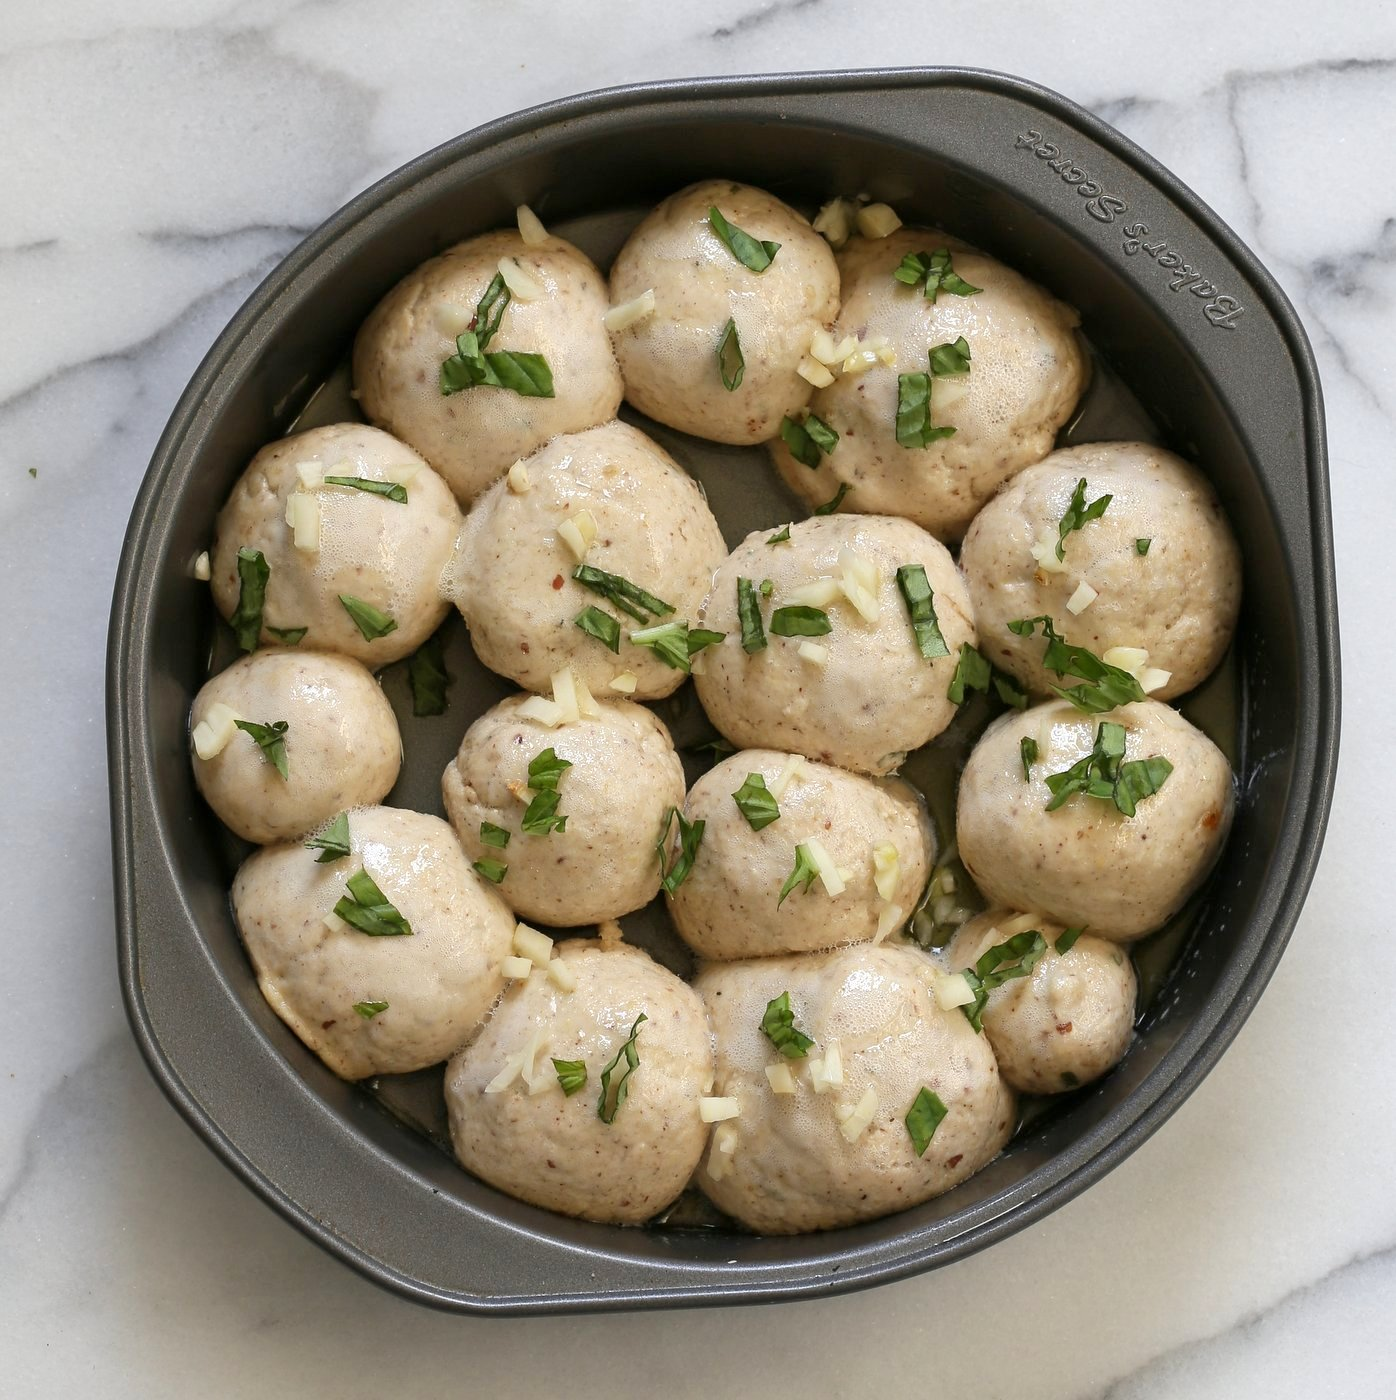 Vegan Gluten free Dinner Rolls with Garlic and Basil. Soft Puffy Gluten-free Dinner Rolls with fresh basil and garlic. Vegan Gluten-free Soy-free Recipe | VeganRicha.com